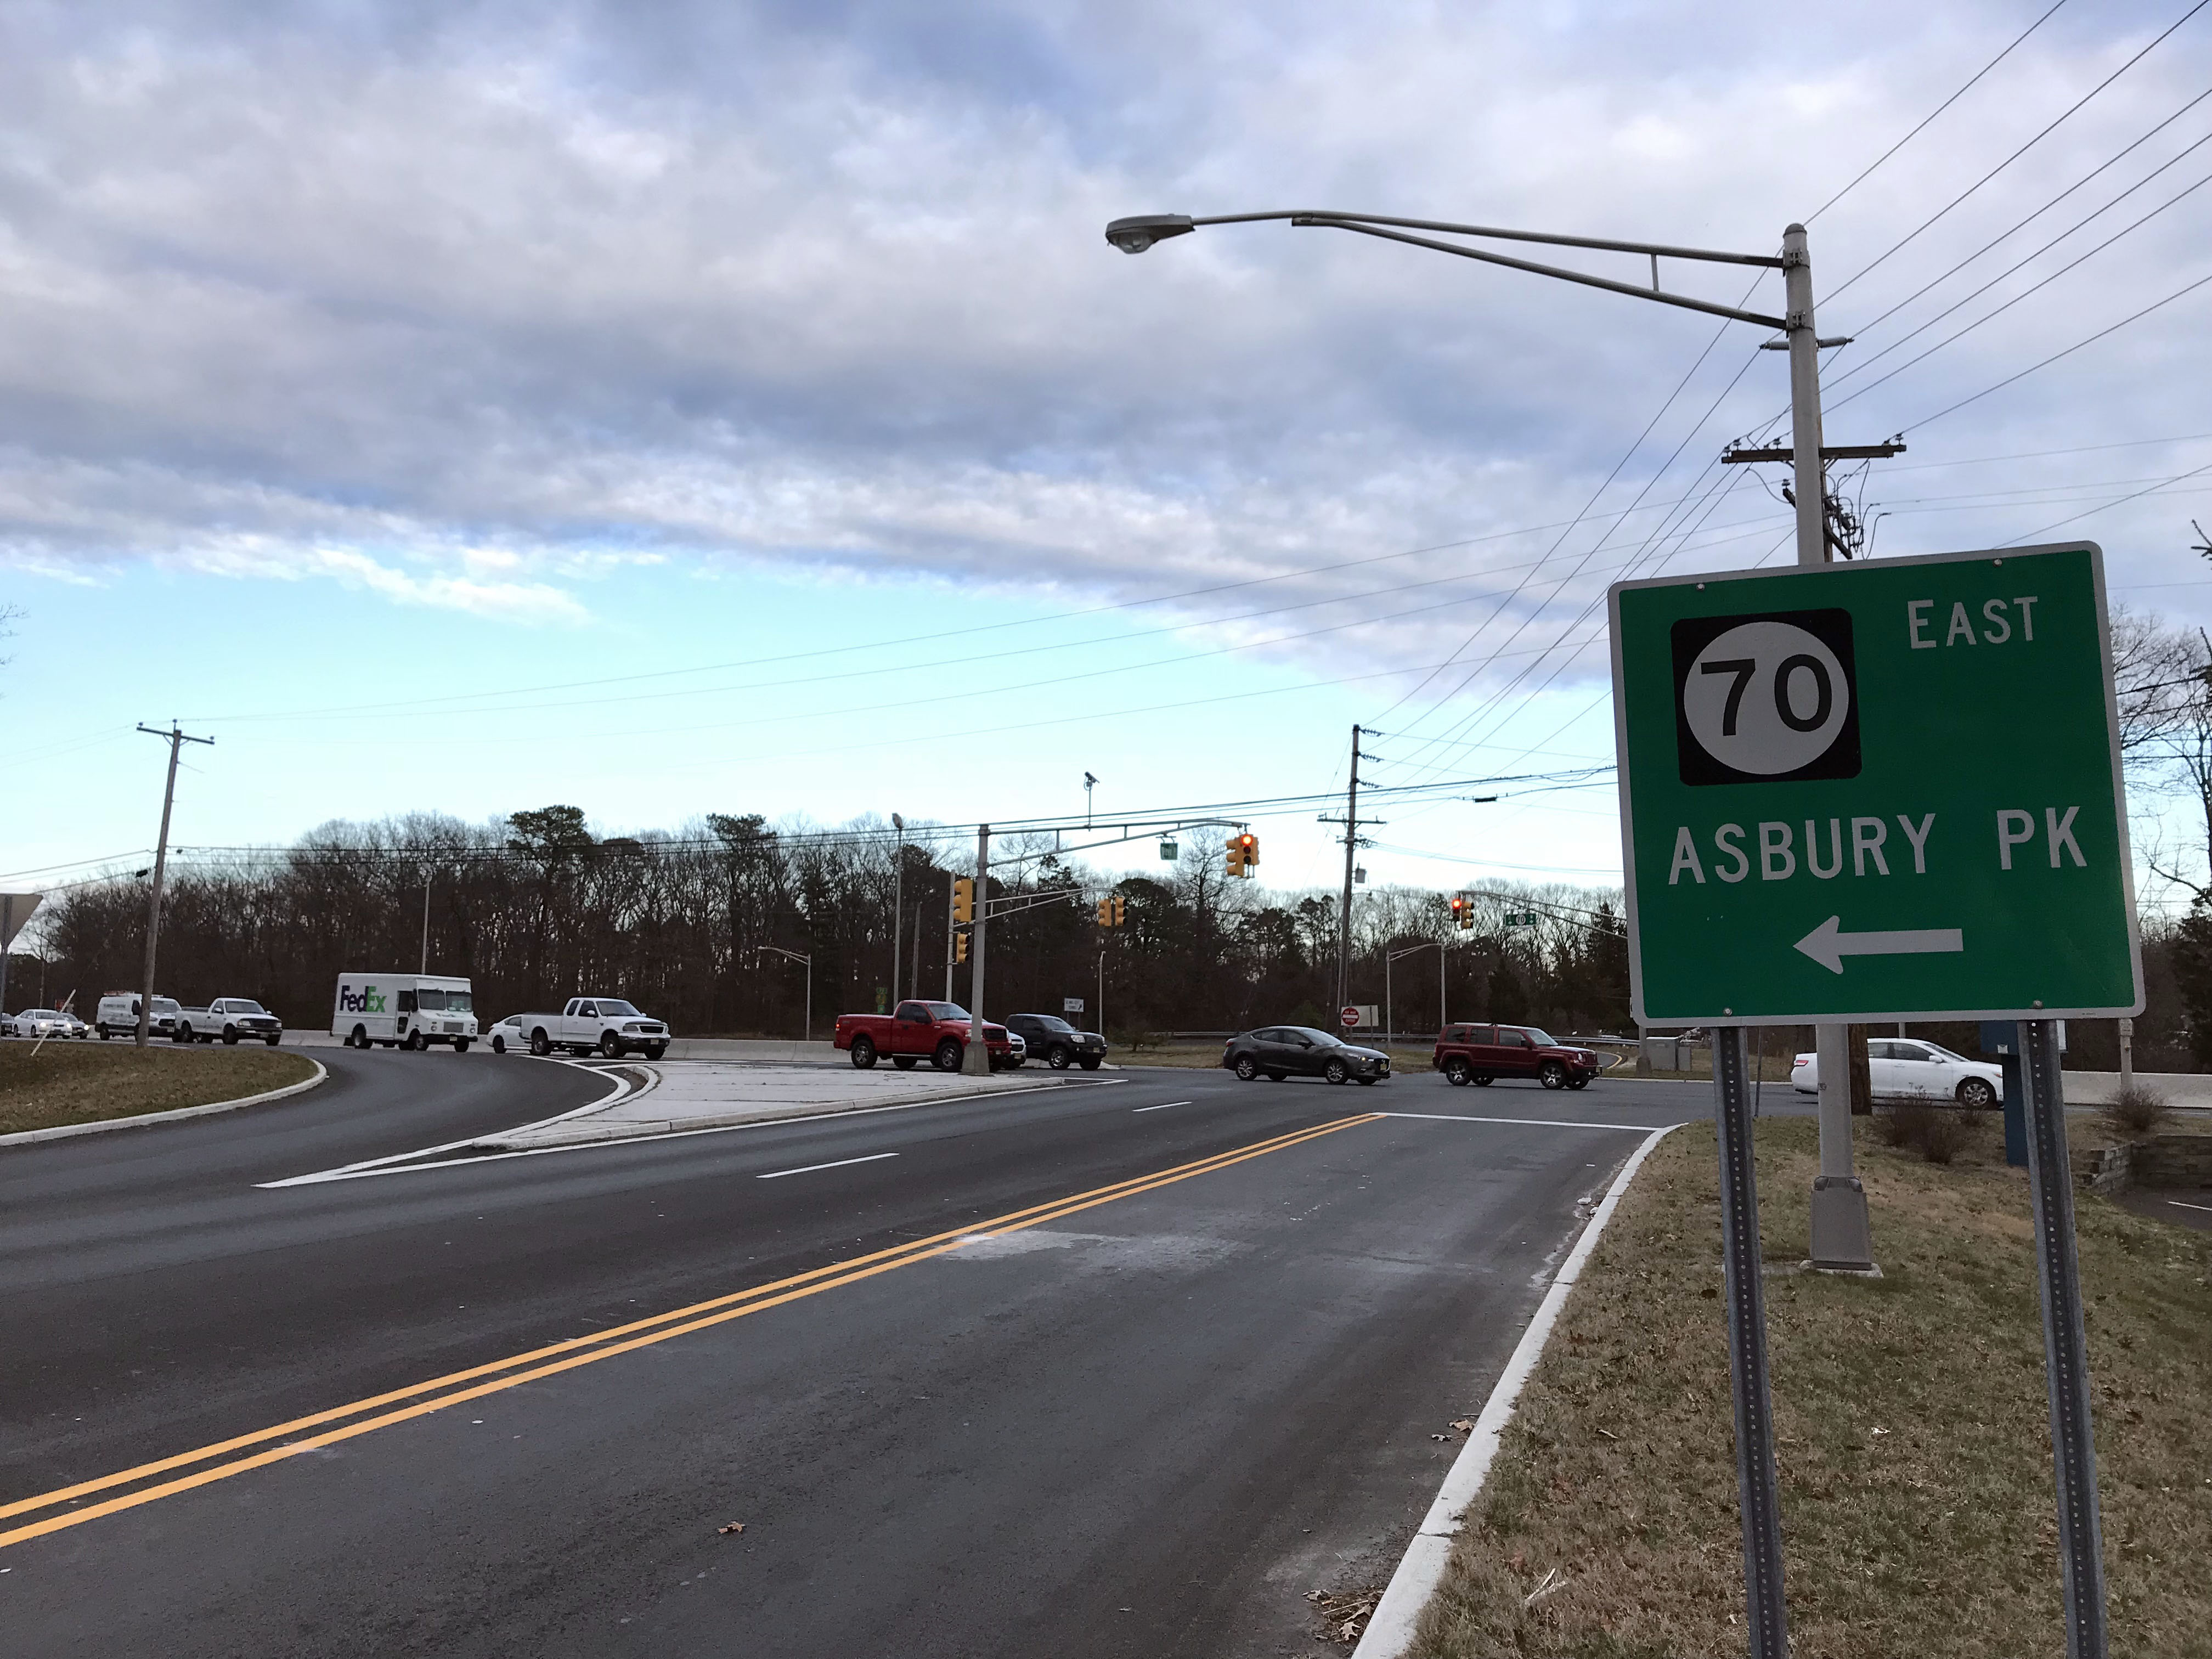 The intersection of Route 70 and Olden Street, Brick, N.J., March 2018. (Photo: Daniel Nee)